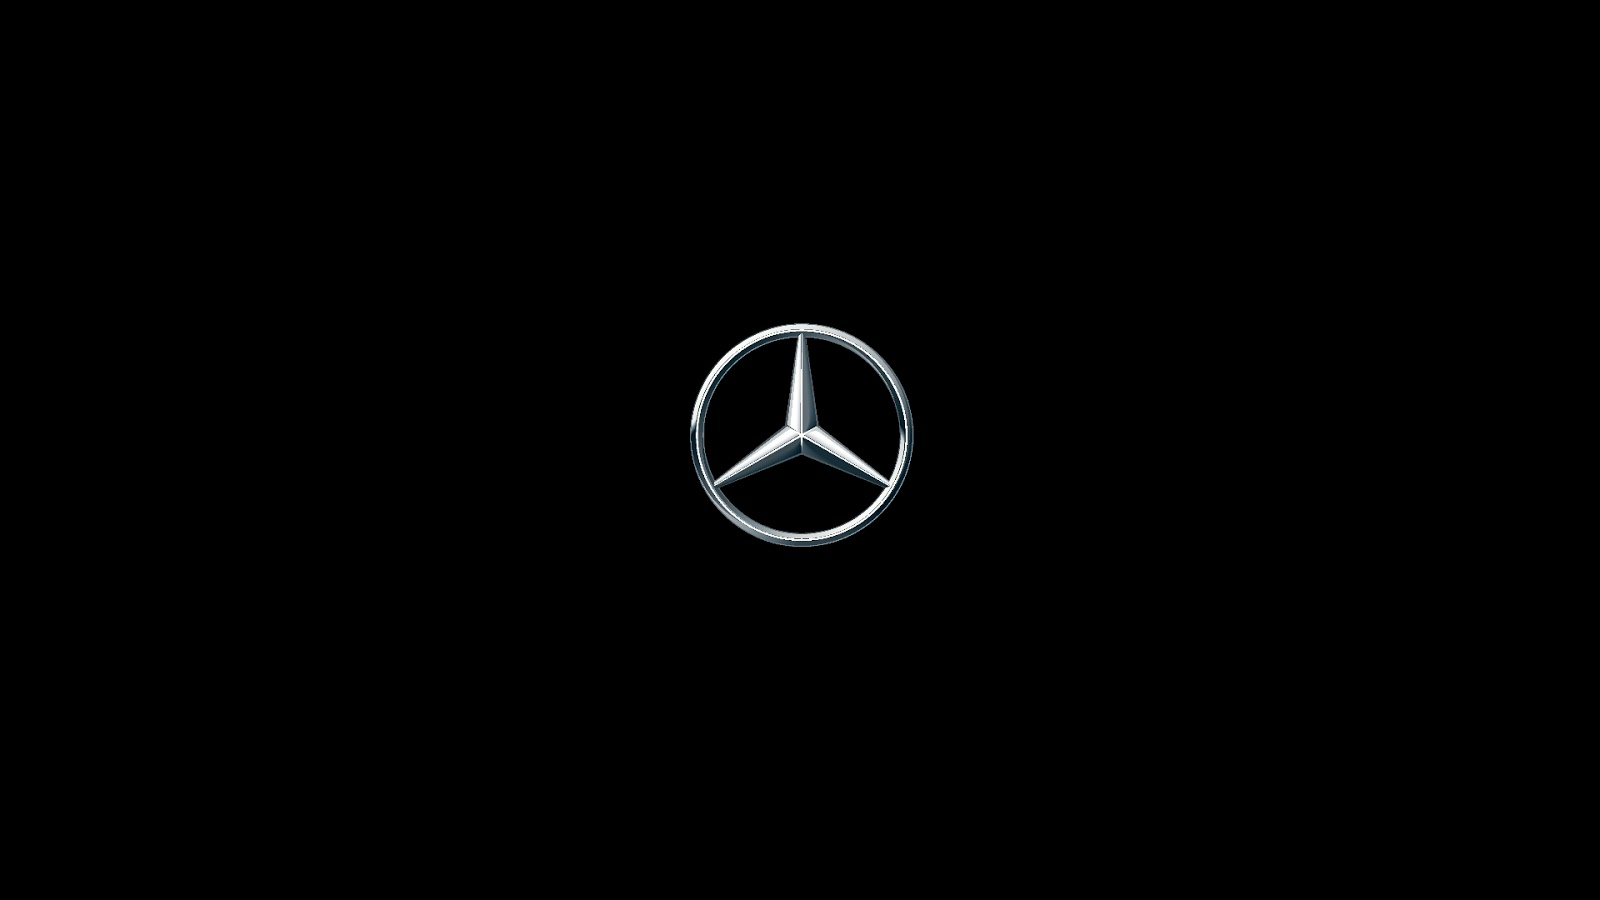 mercedes benz logos in black background ~ mercedes benz logos